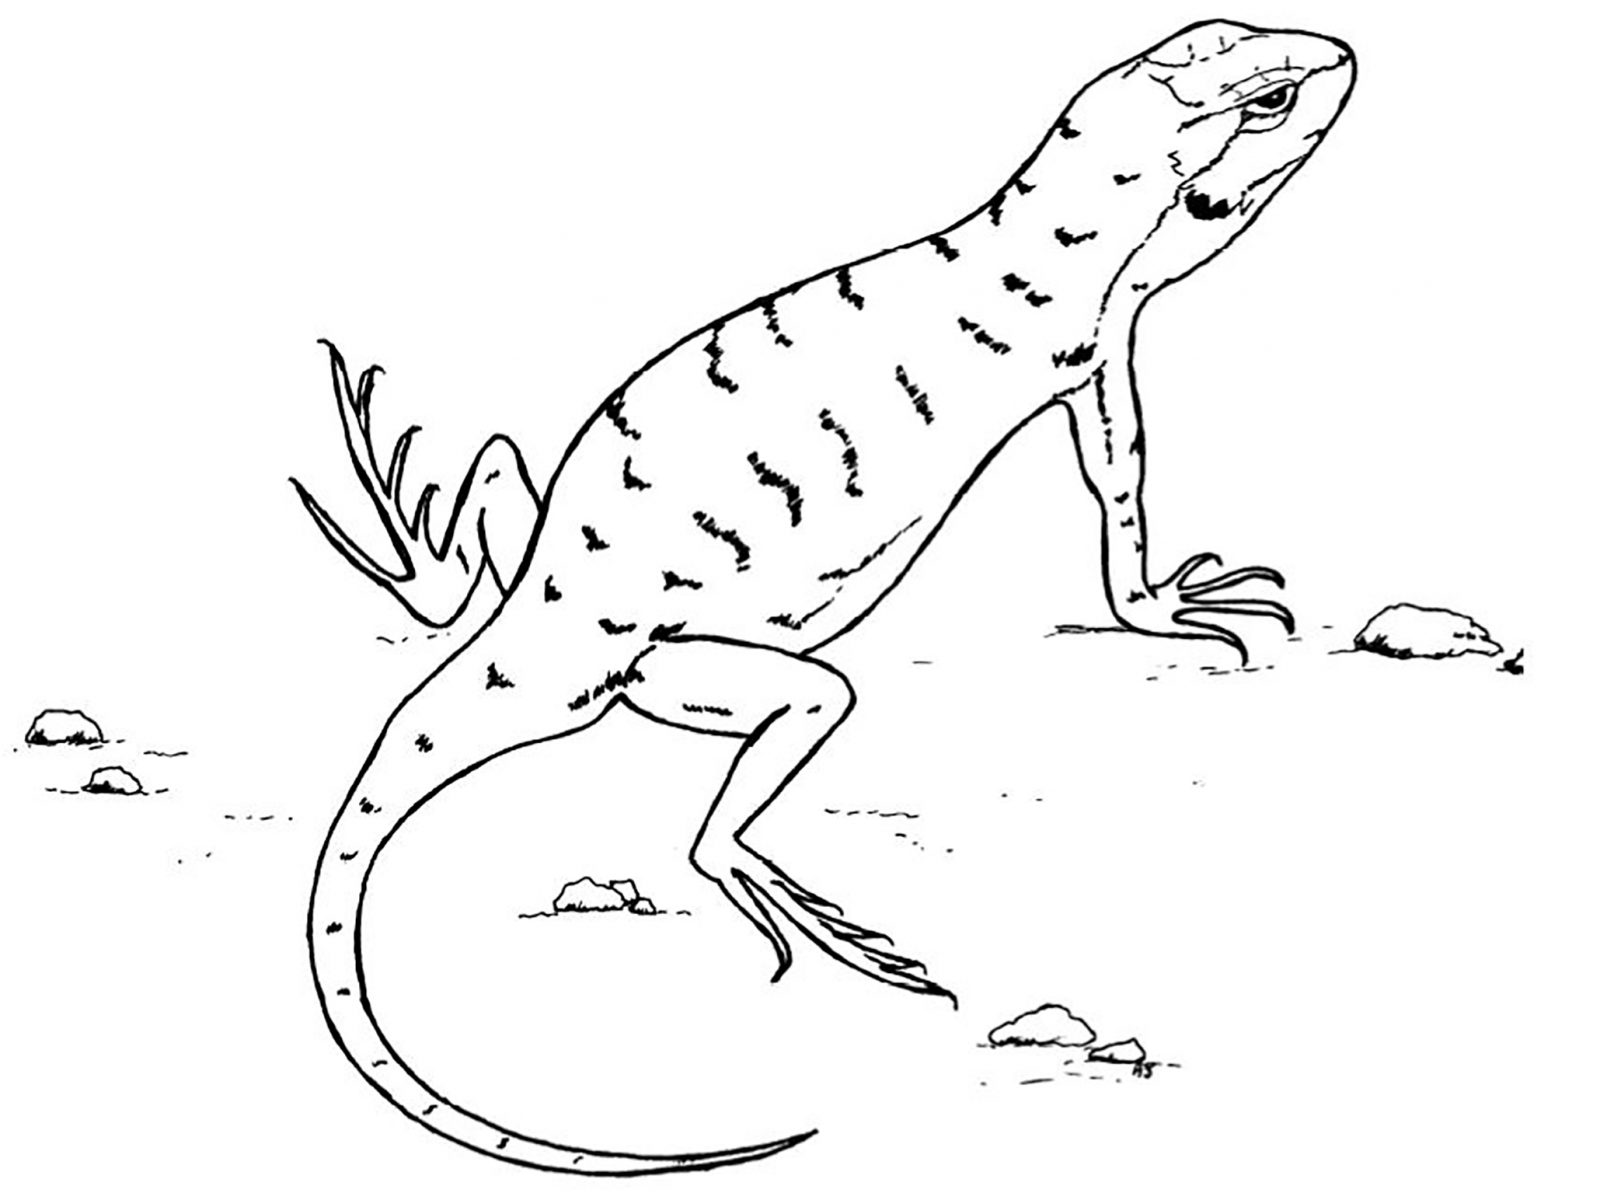 Lizard drawing pictures at free for for Lizards coloring pages